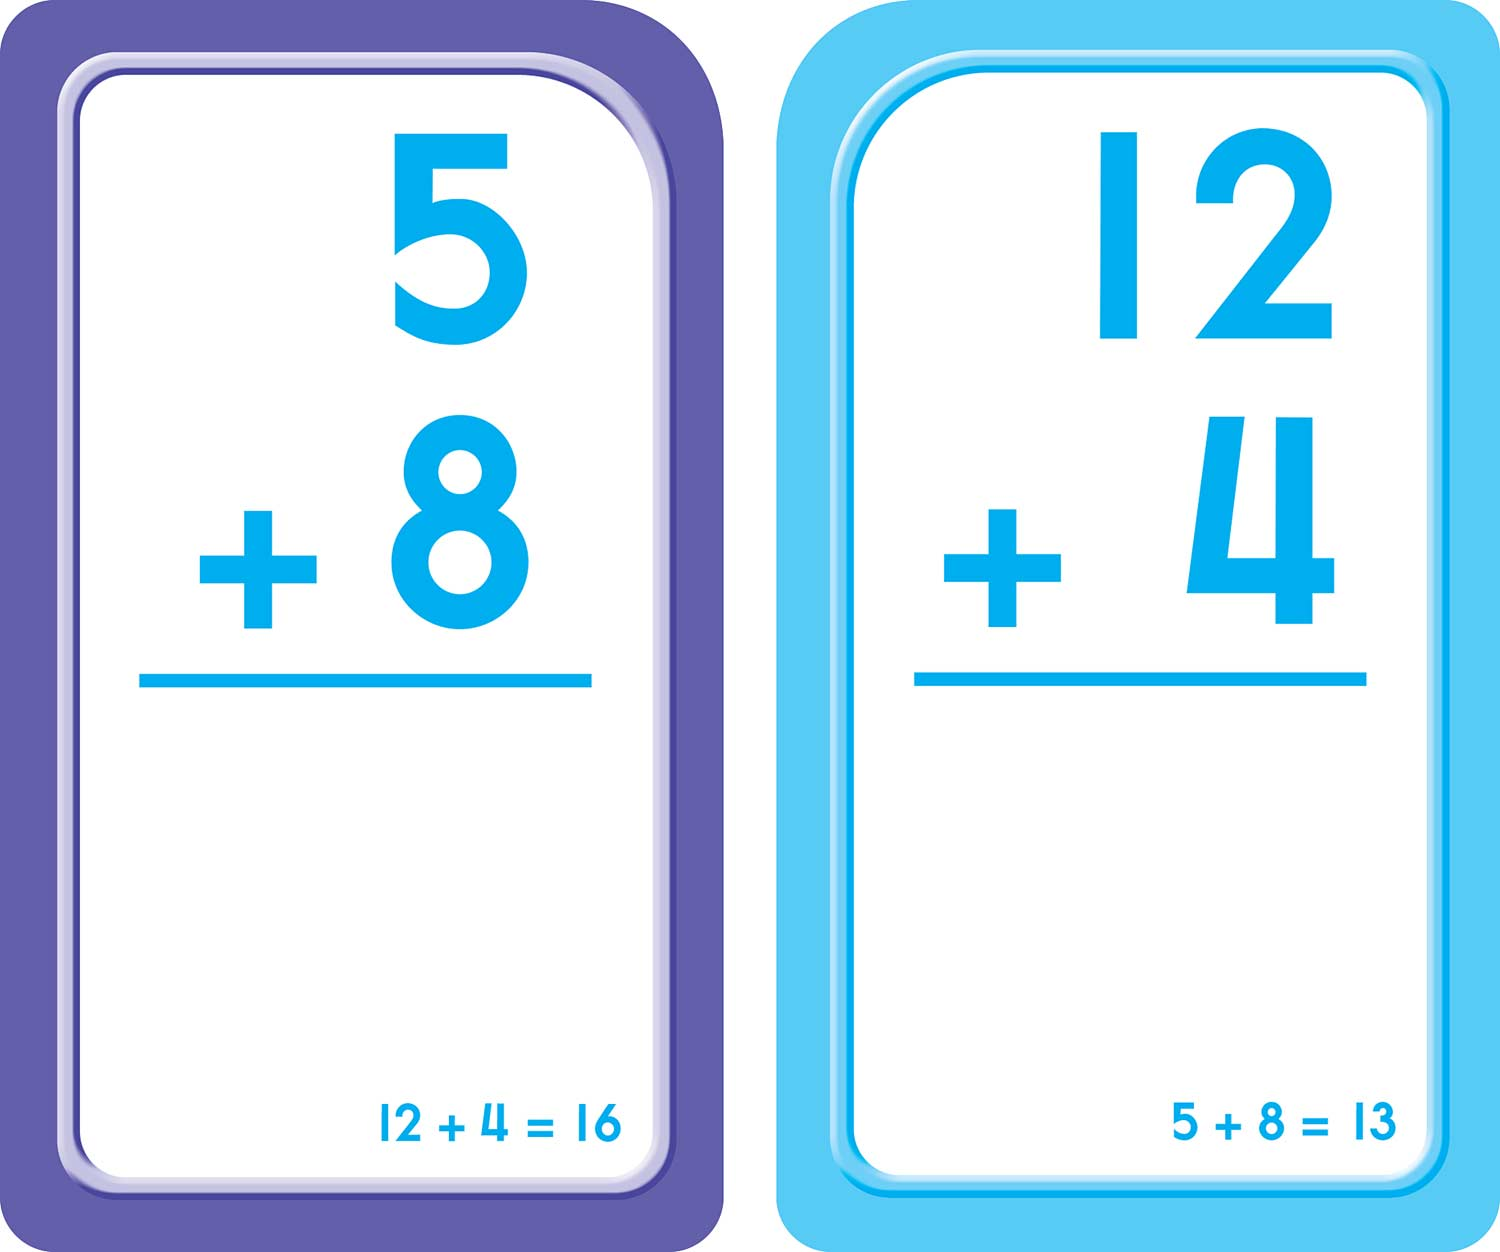 2nd grade flash cards - Selo.l-ink.co